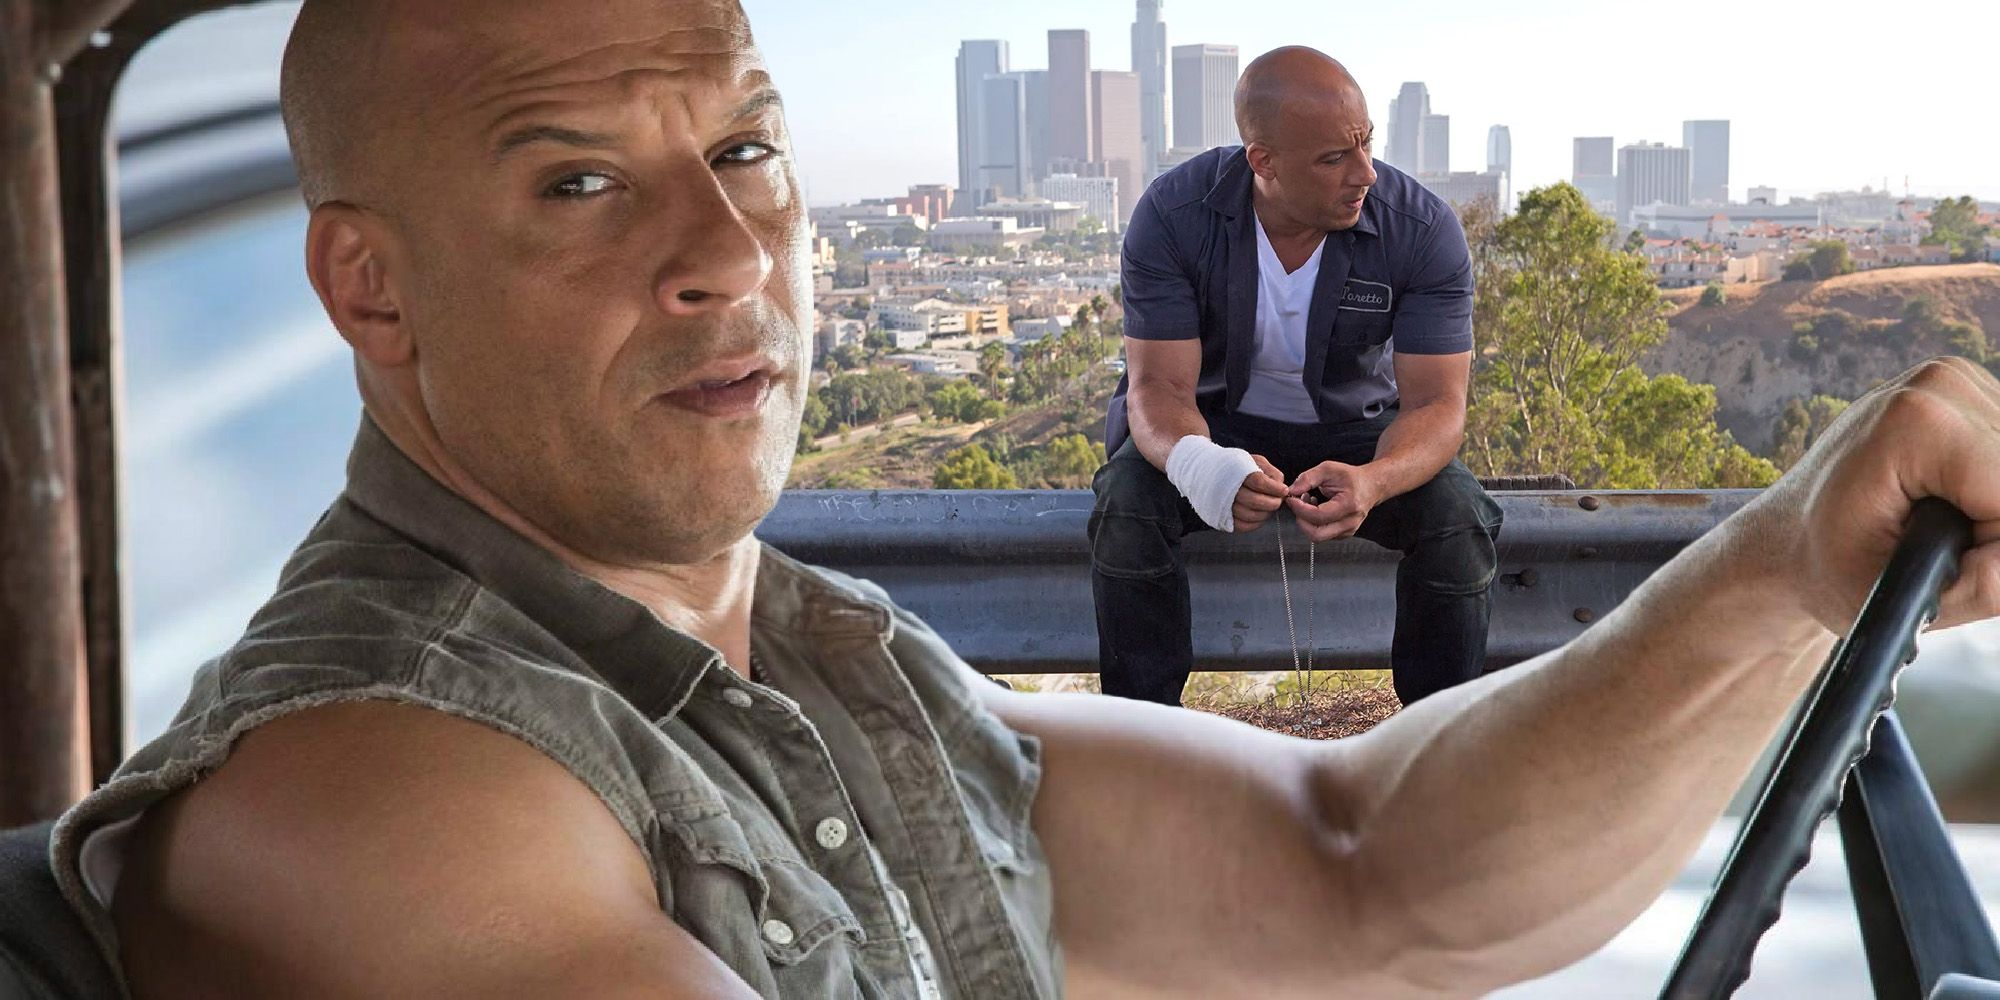 Will Fast & Furious 11 Kill Dom? How His Fast Saga Story Should End